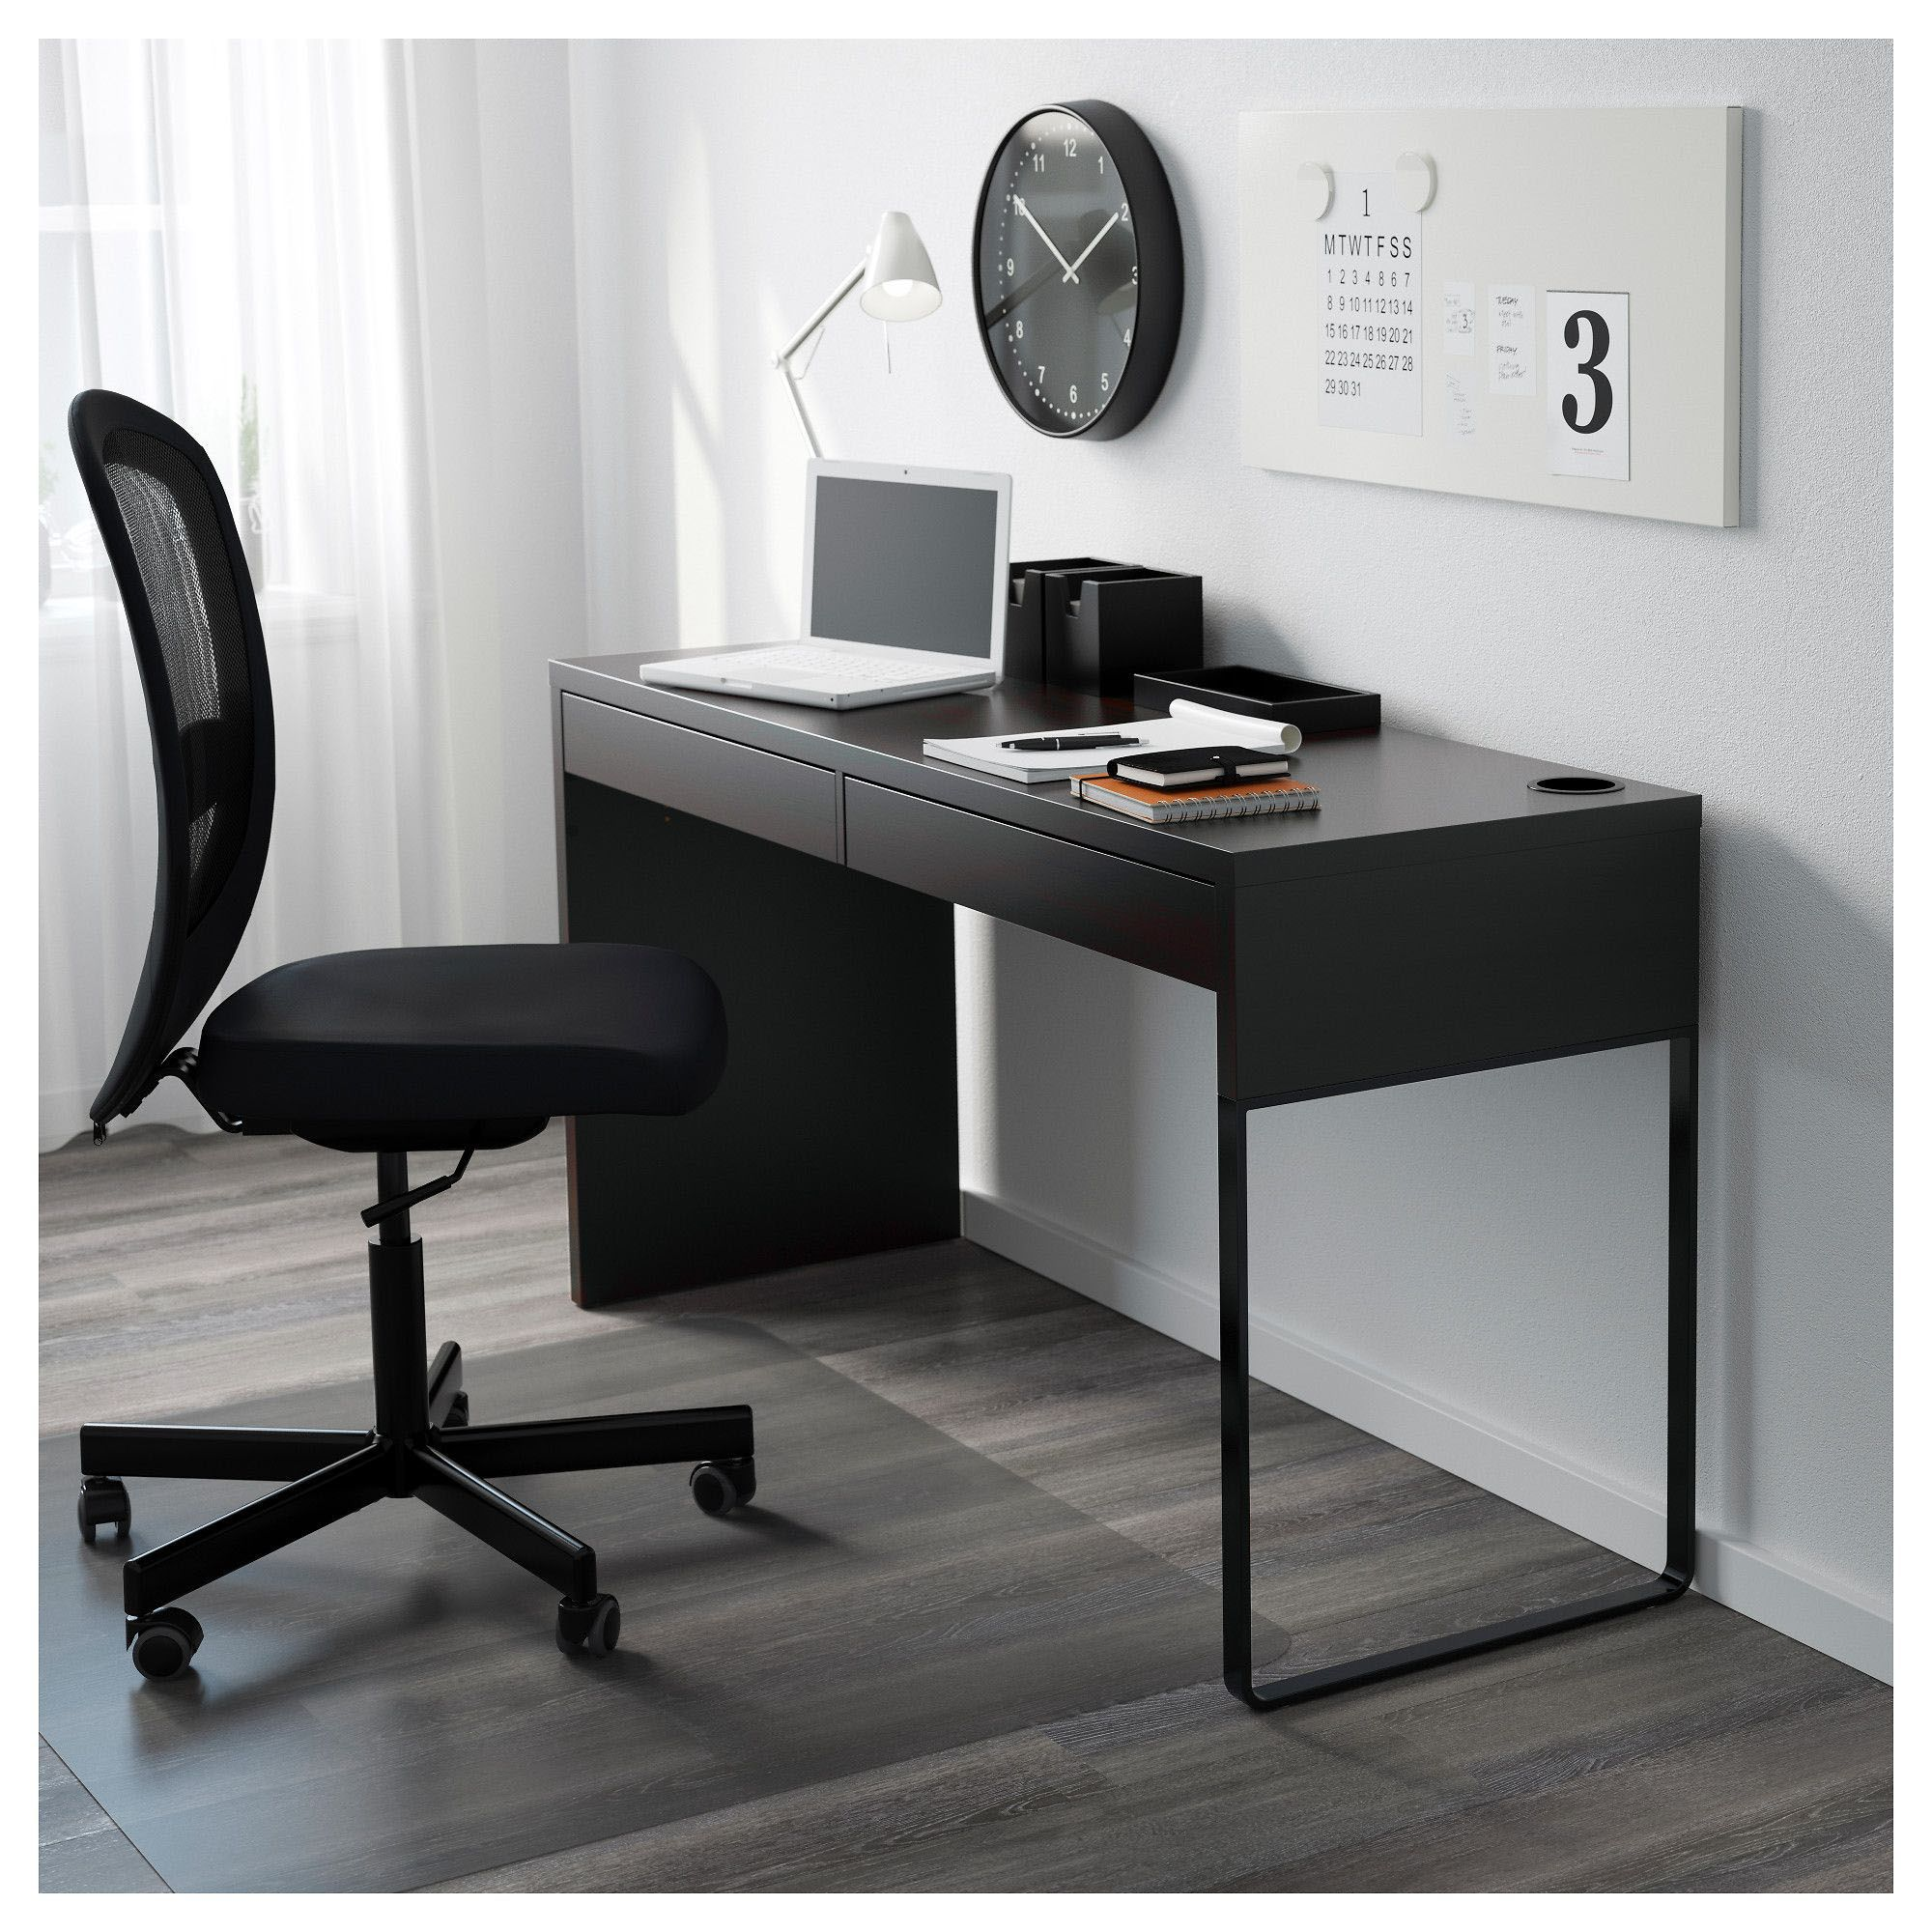 Desk Ideas Perfect For Small Spaces Micke Desk Ikea Micke Desk Ikea Small Desk